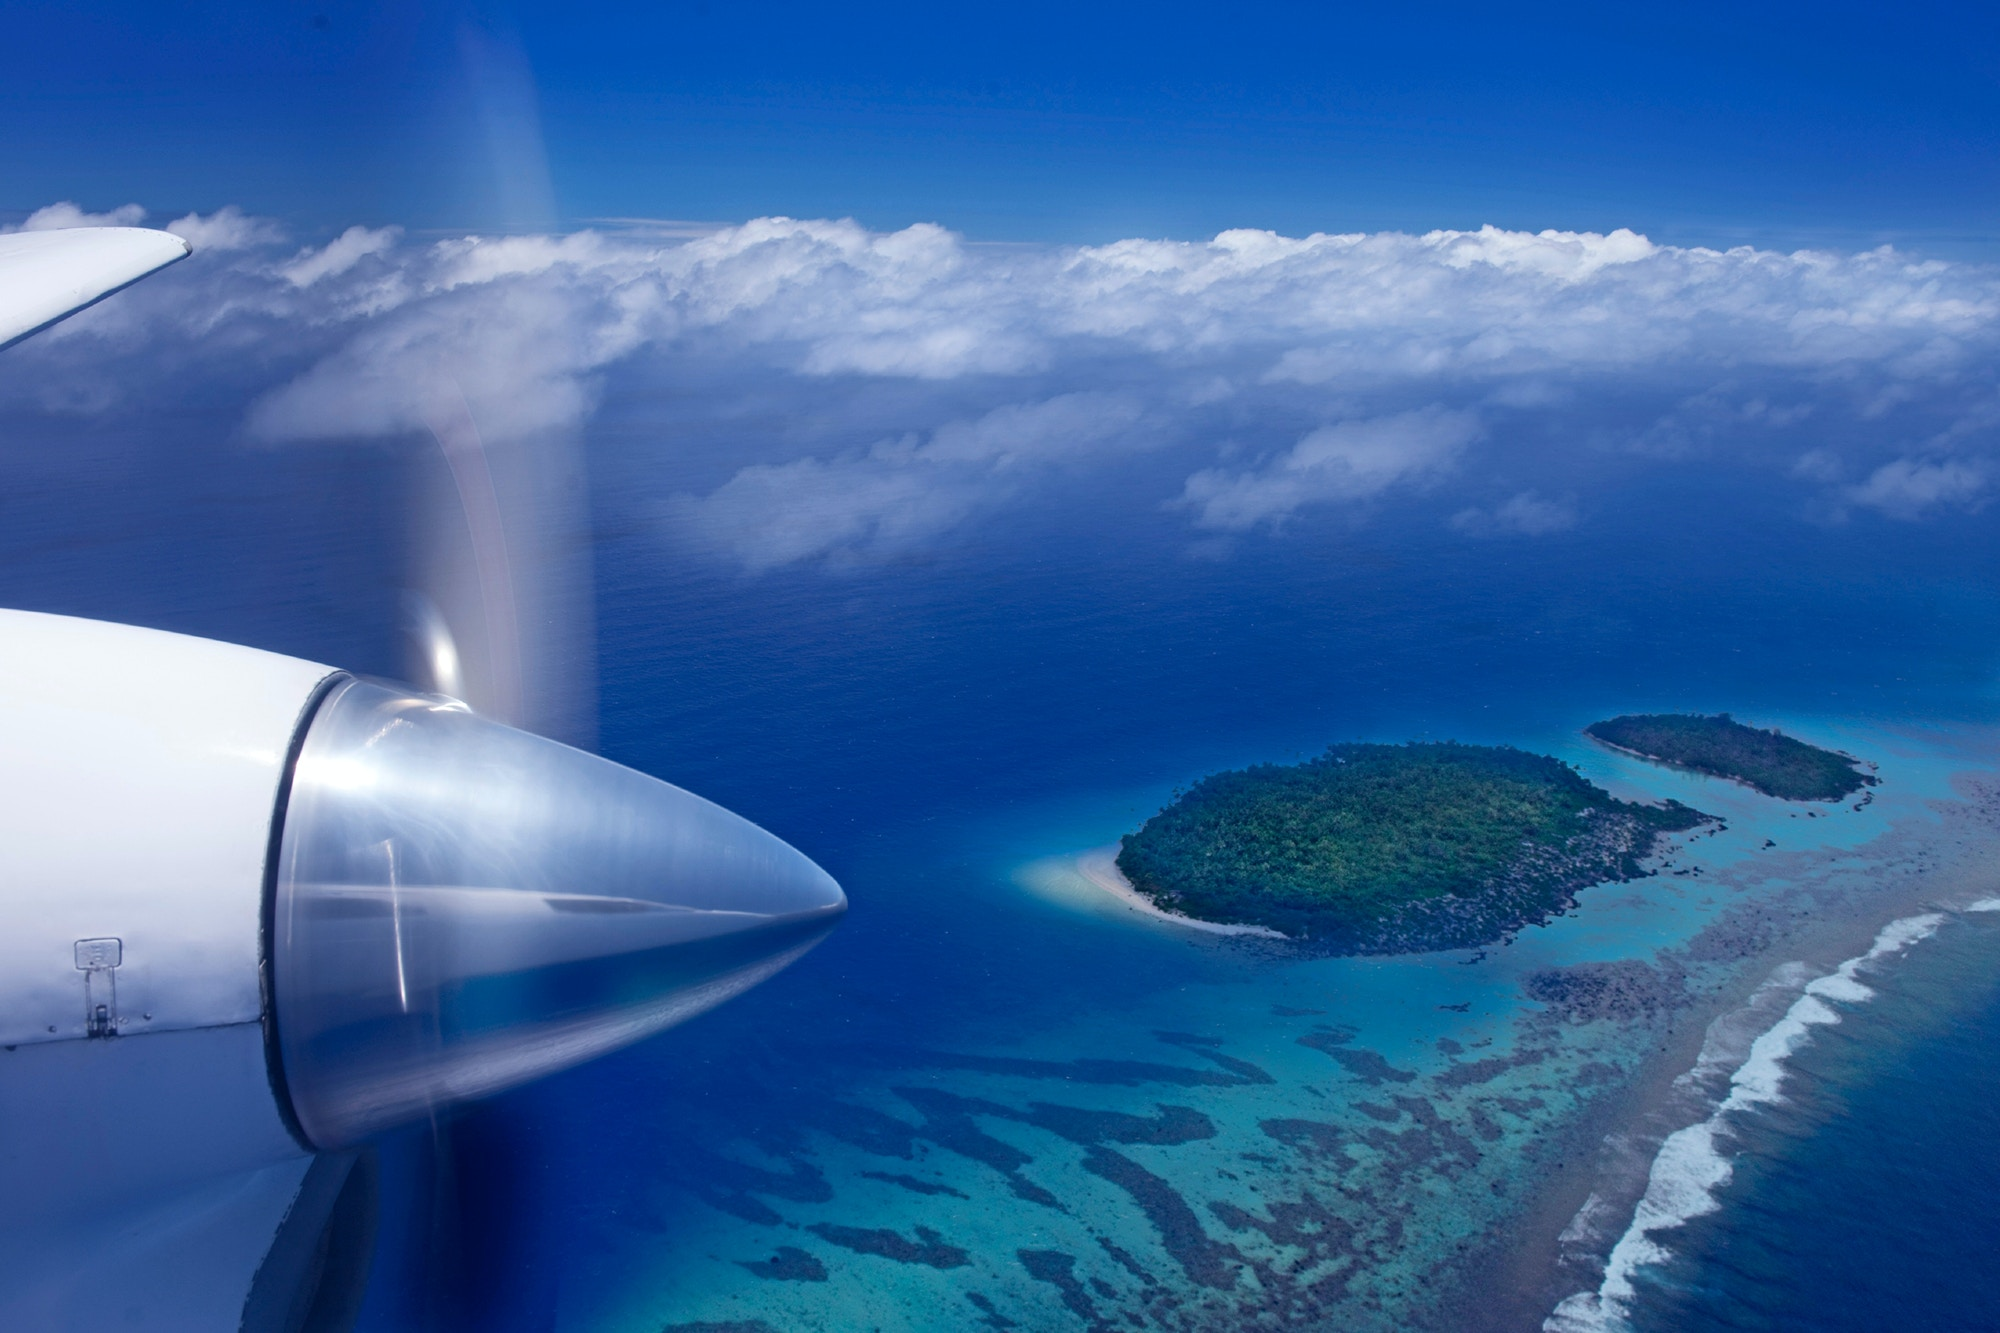 A view of a tropical island from the window of a light aircraft © Pete Seaward / Lonely Planet